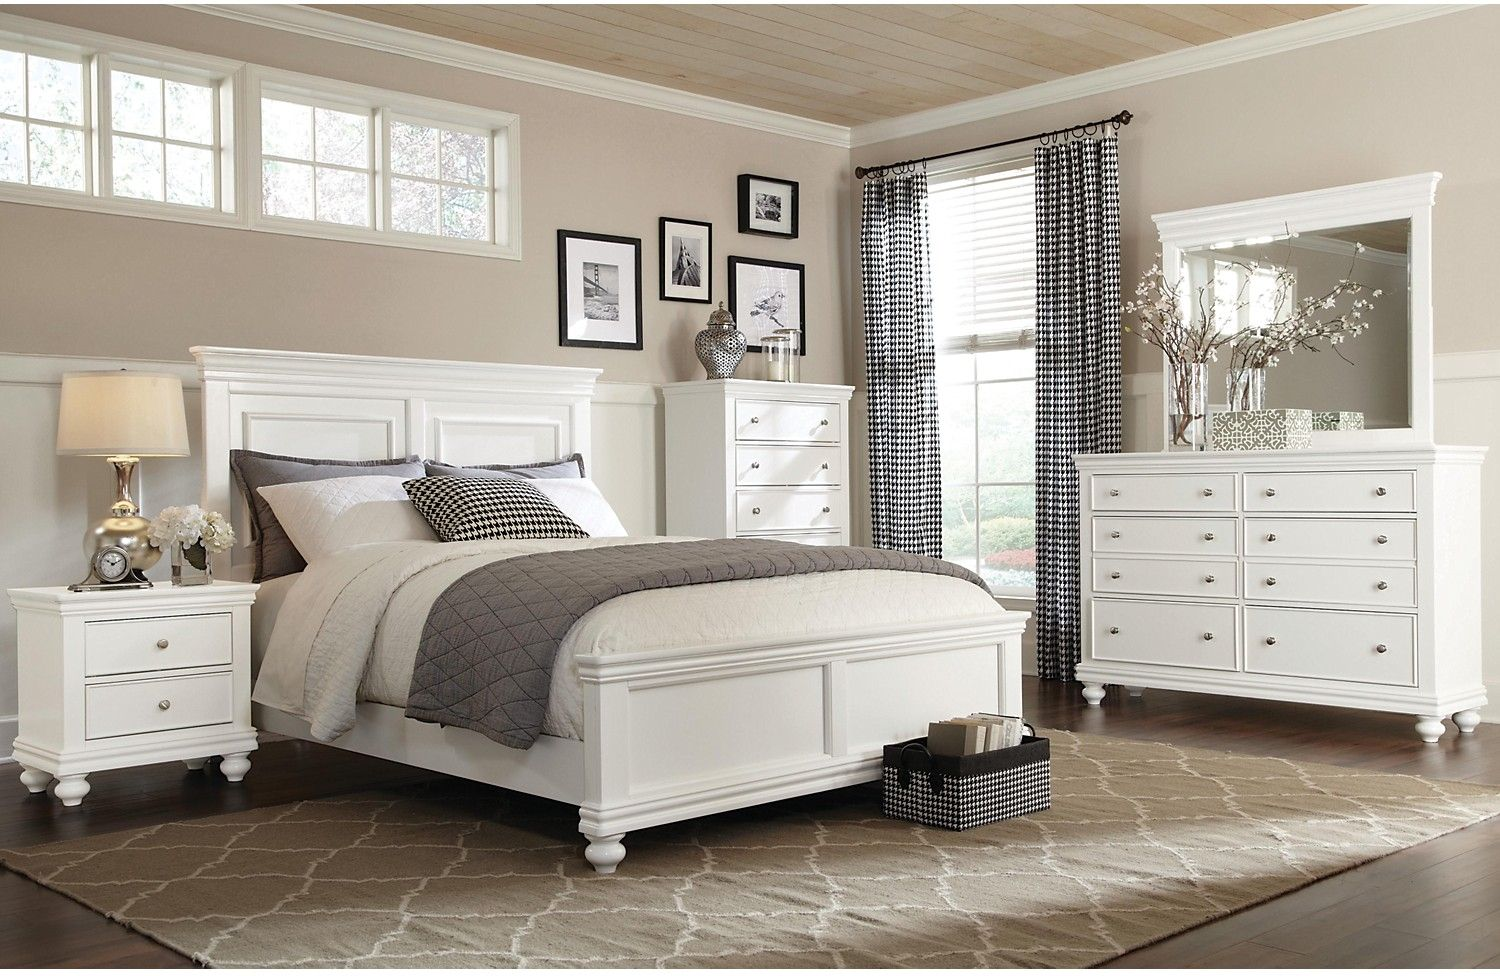 Bridgeport 6-Piece Queen Bedroom Set – White | 2442 Bristol ...